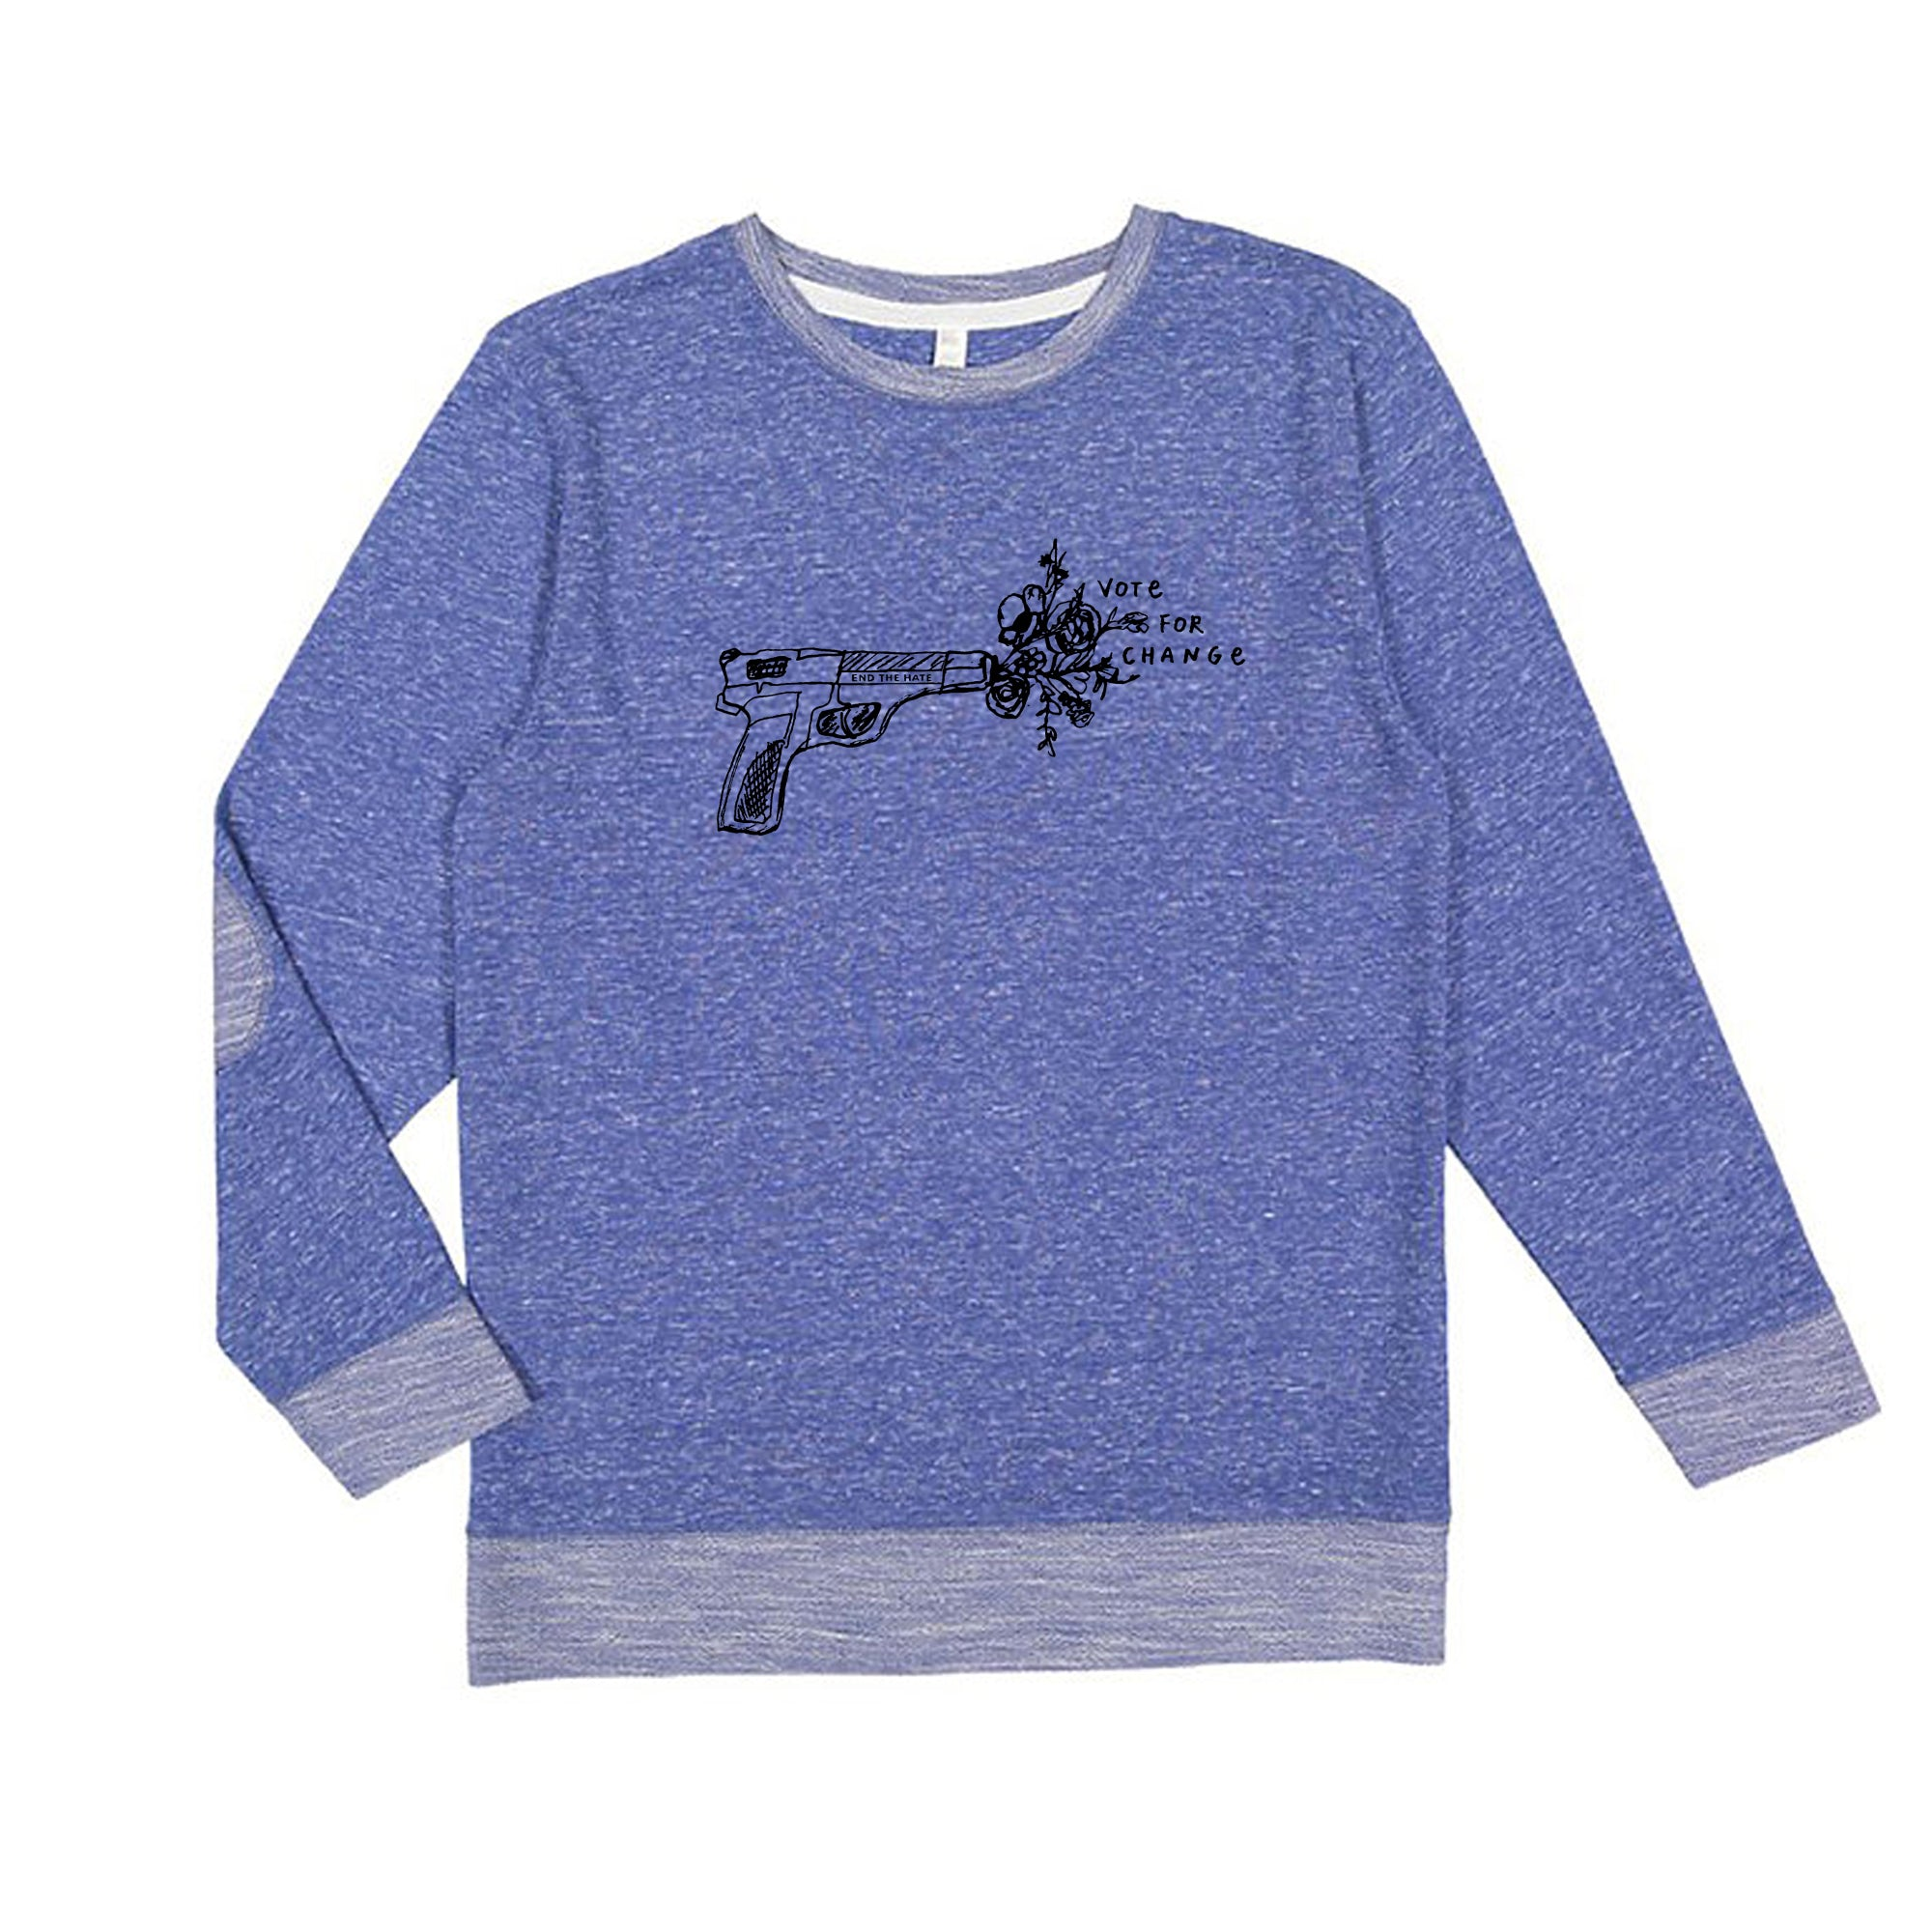 Vote for change : Unisex Melange Sweatshirt